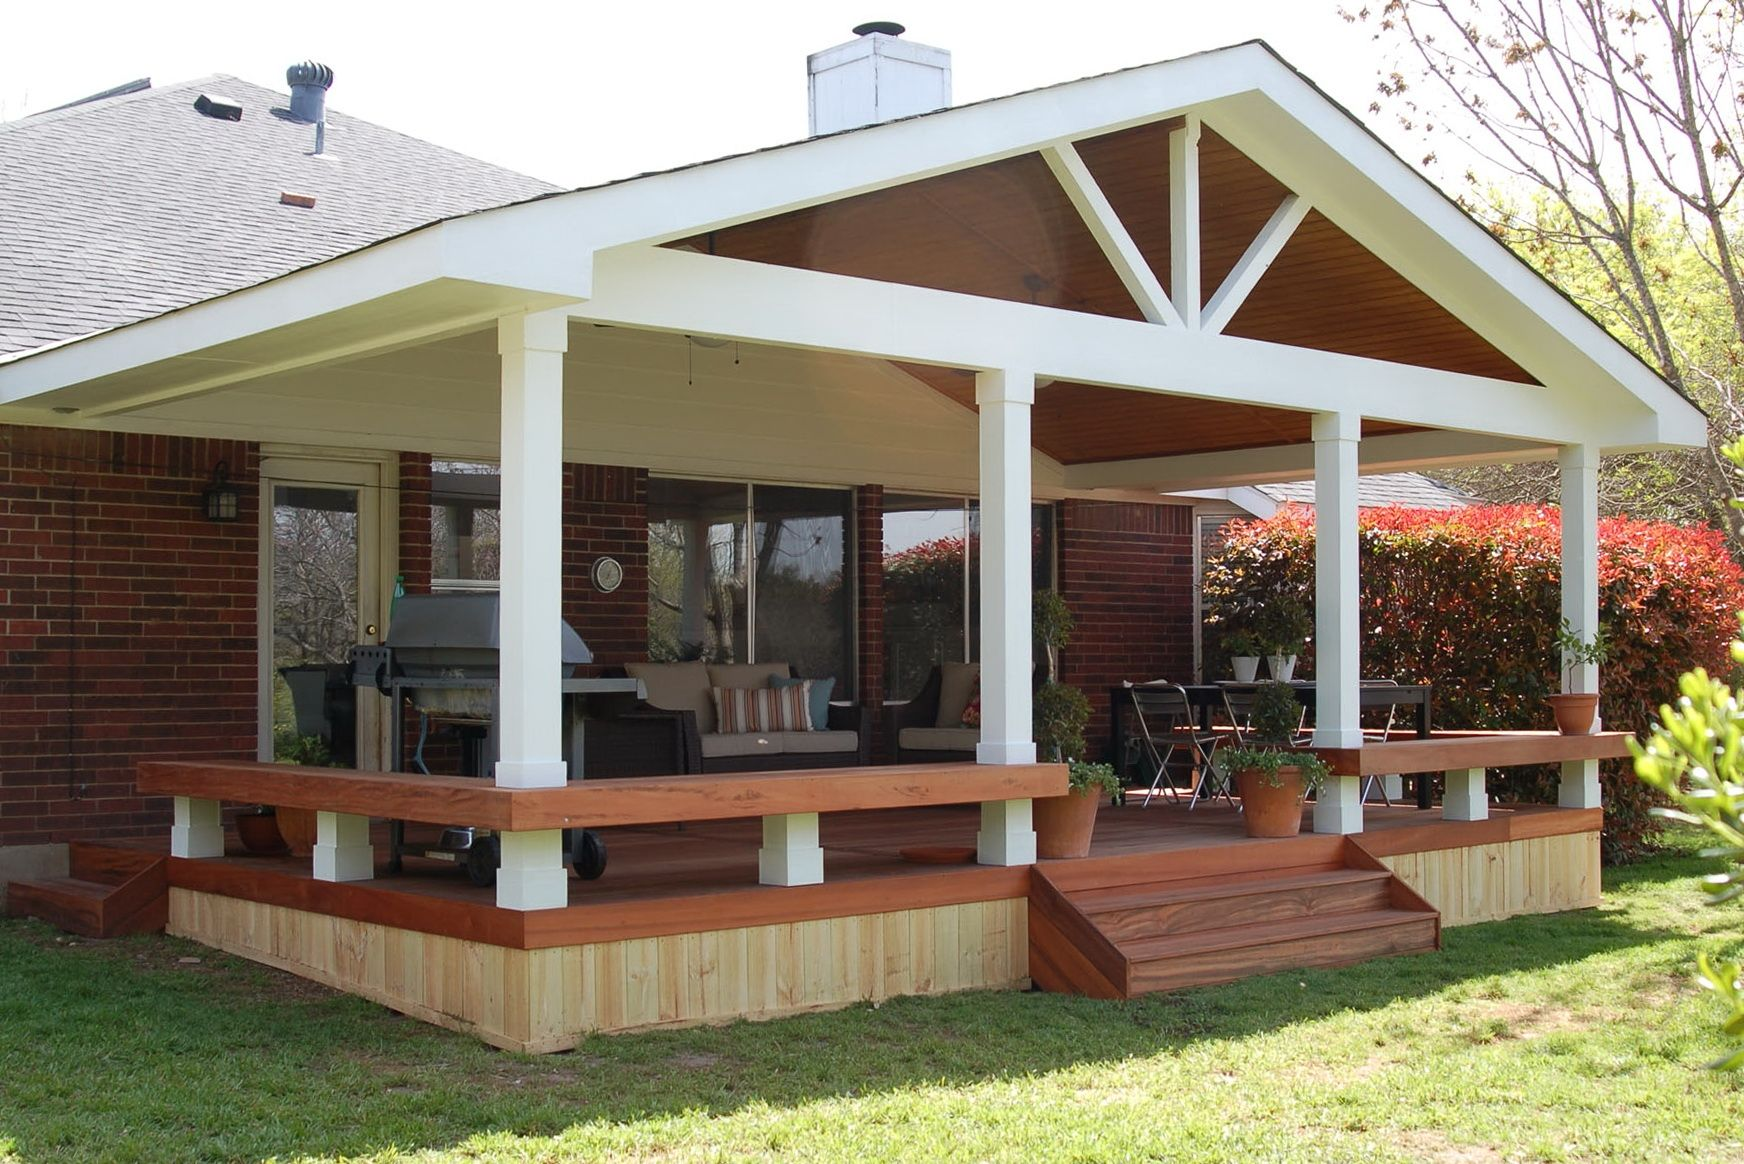 Covered Deck Designs Pictures Covered Deck Pictures Covered Deck Ideas On A Budget Roof Over Deck Pictures Covered Patio Design Patio Design Budget Patio